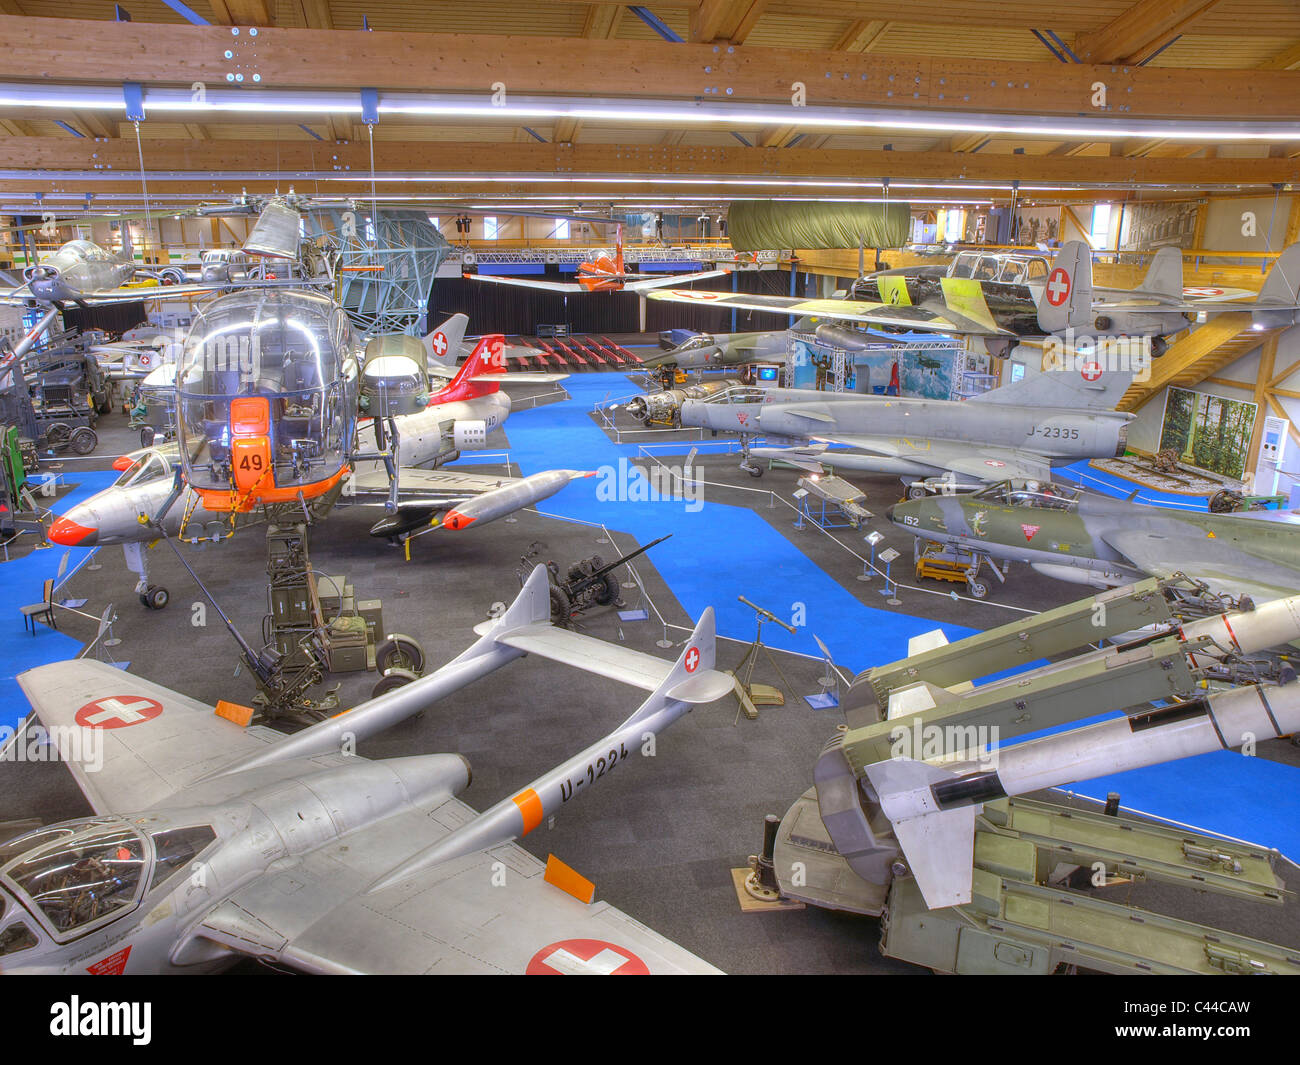 Airplanes, airman's museum, village Duben, museum, canton Zurich, Switzerland, military aircraft, old-timers, - Stock Image